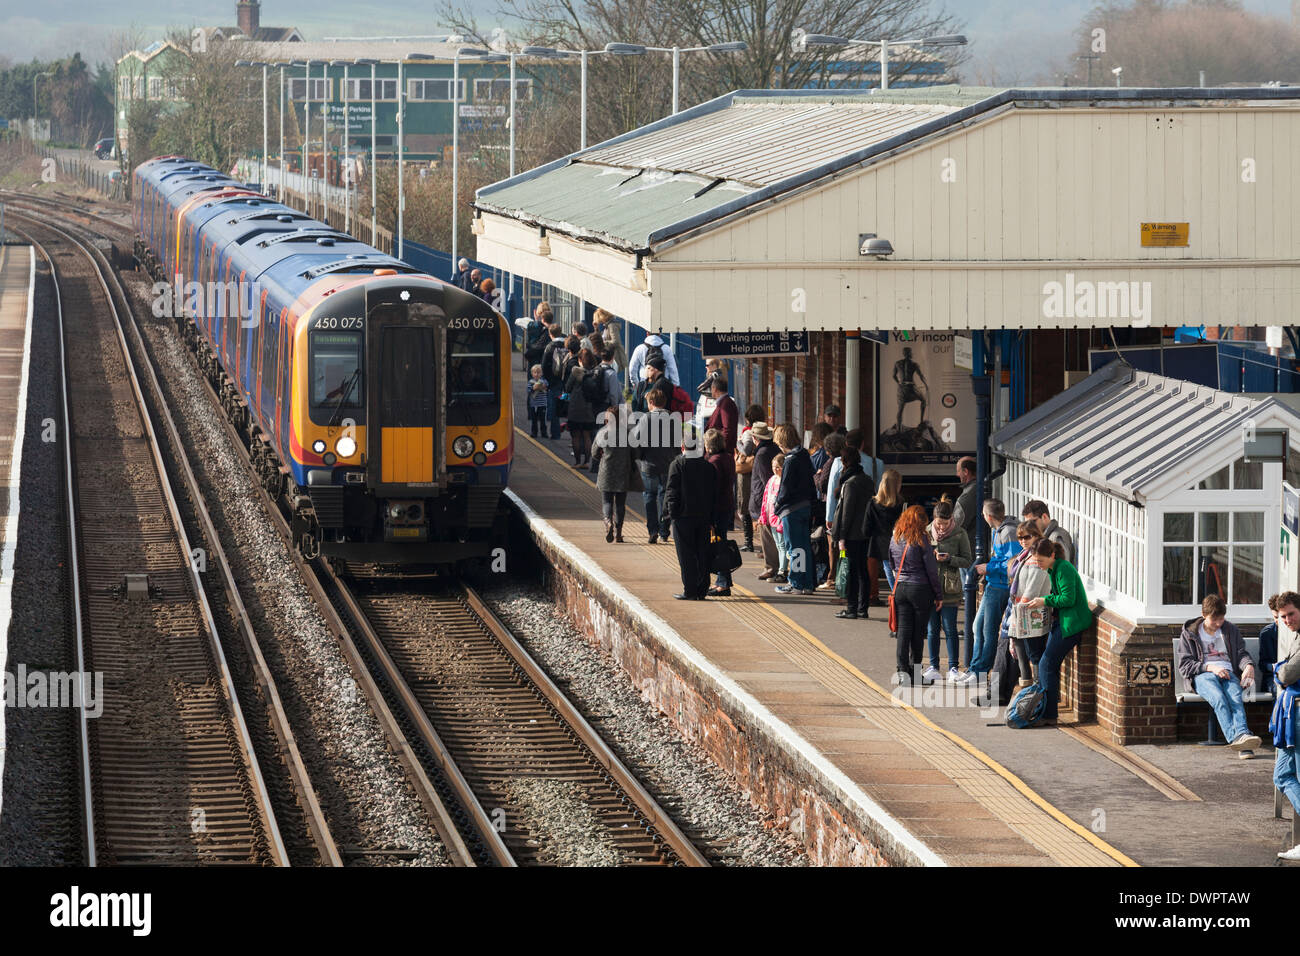 Passengers about to board arriving train at Petersfield Railway Station. - Stock Image